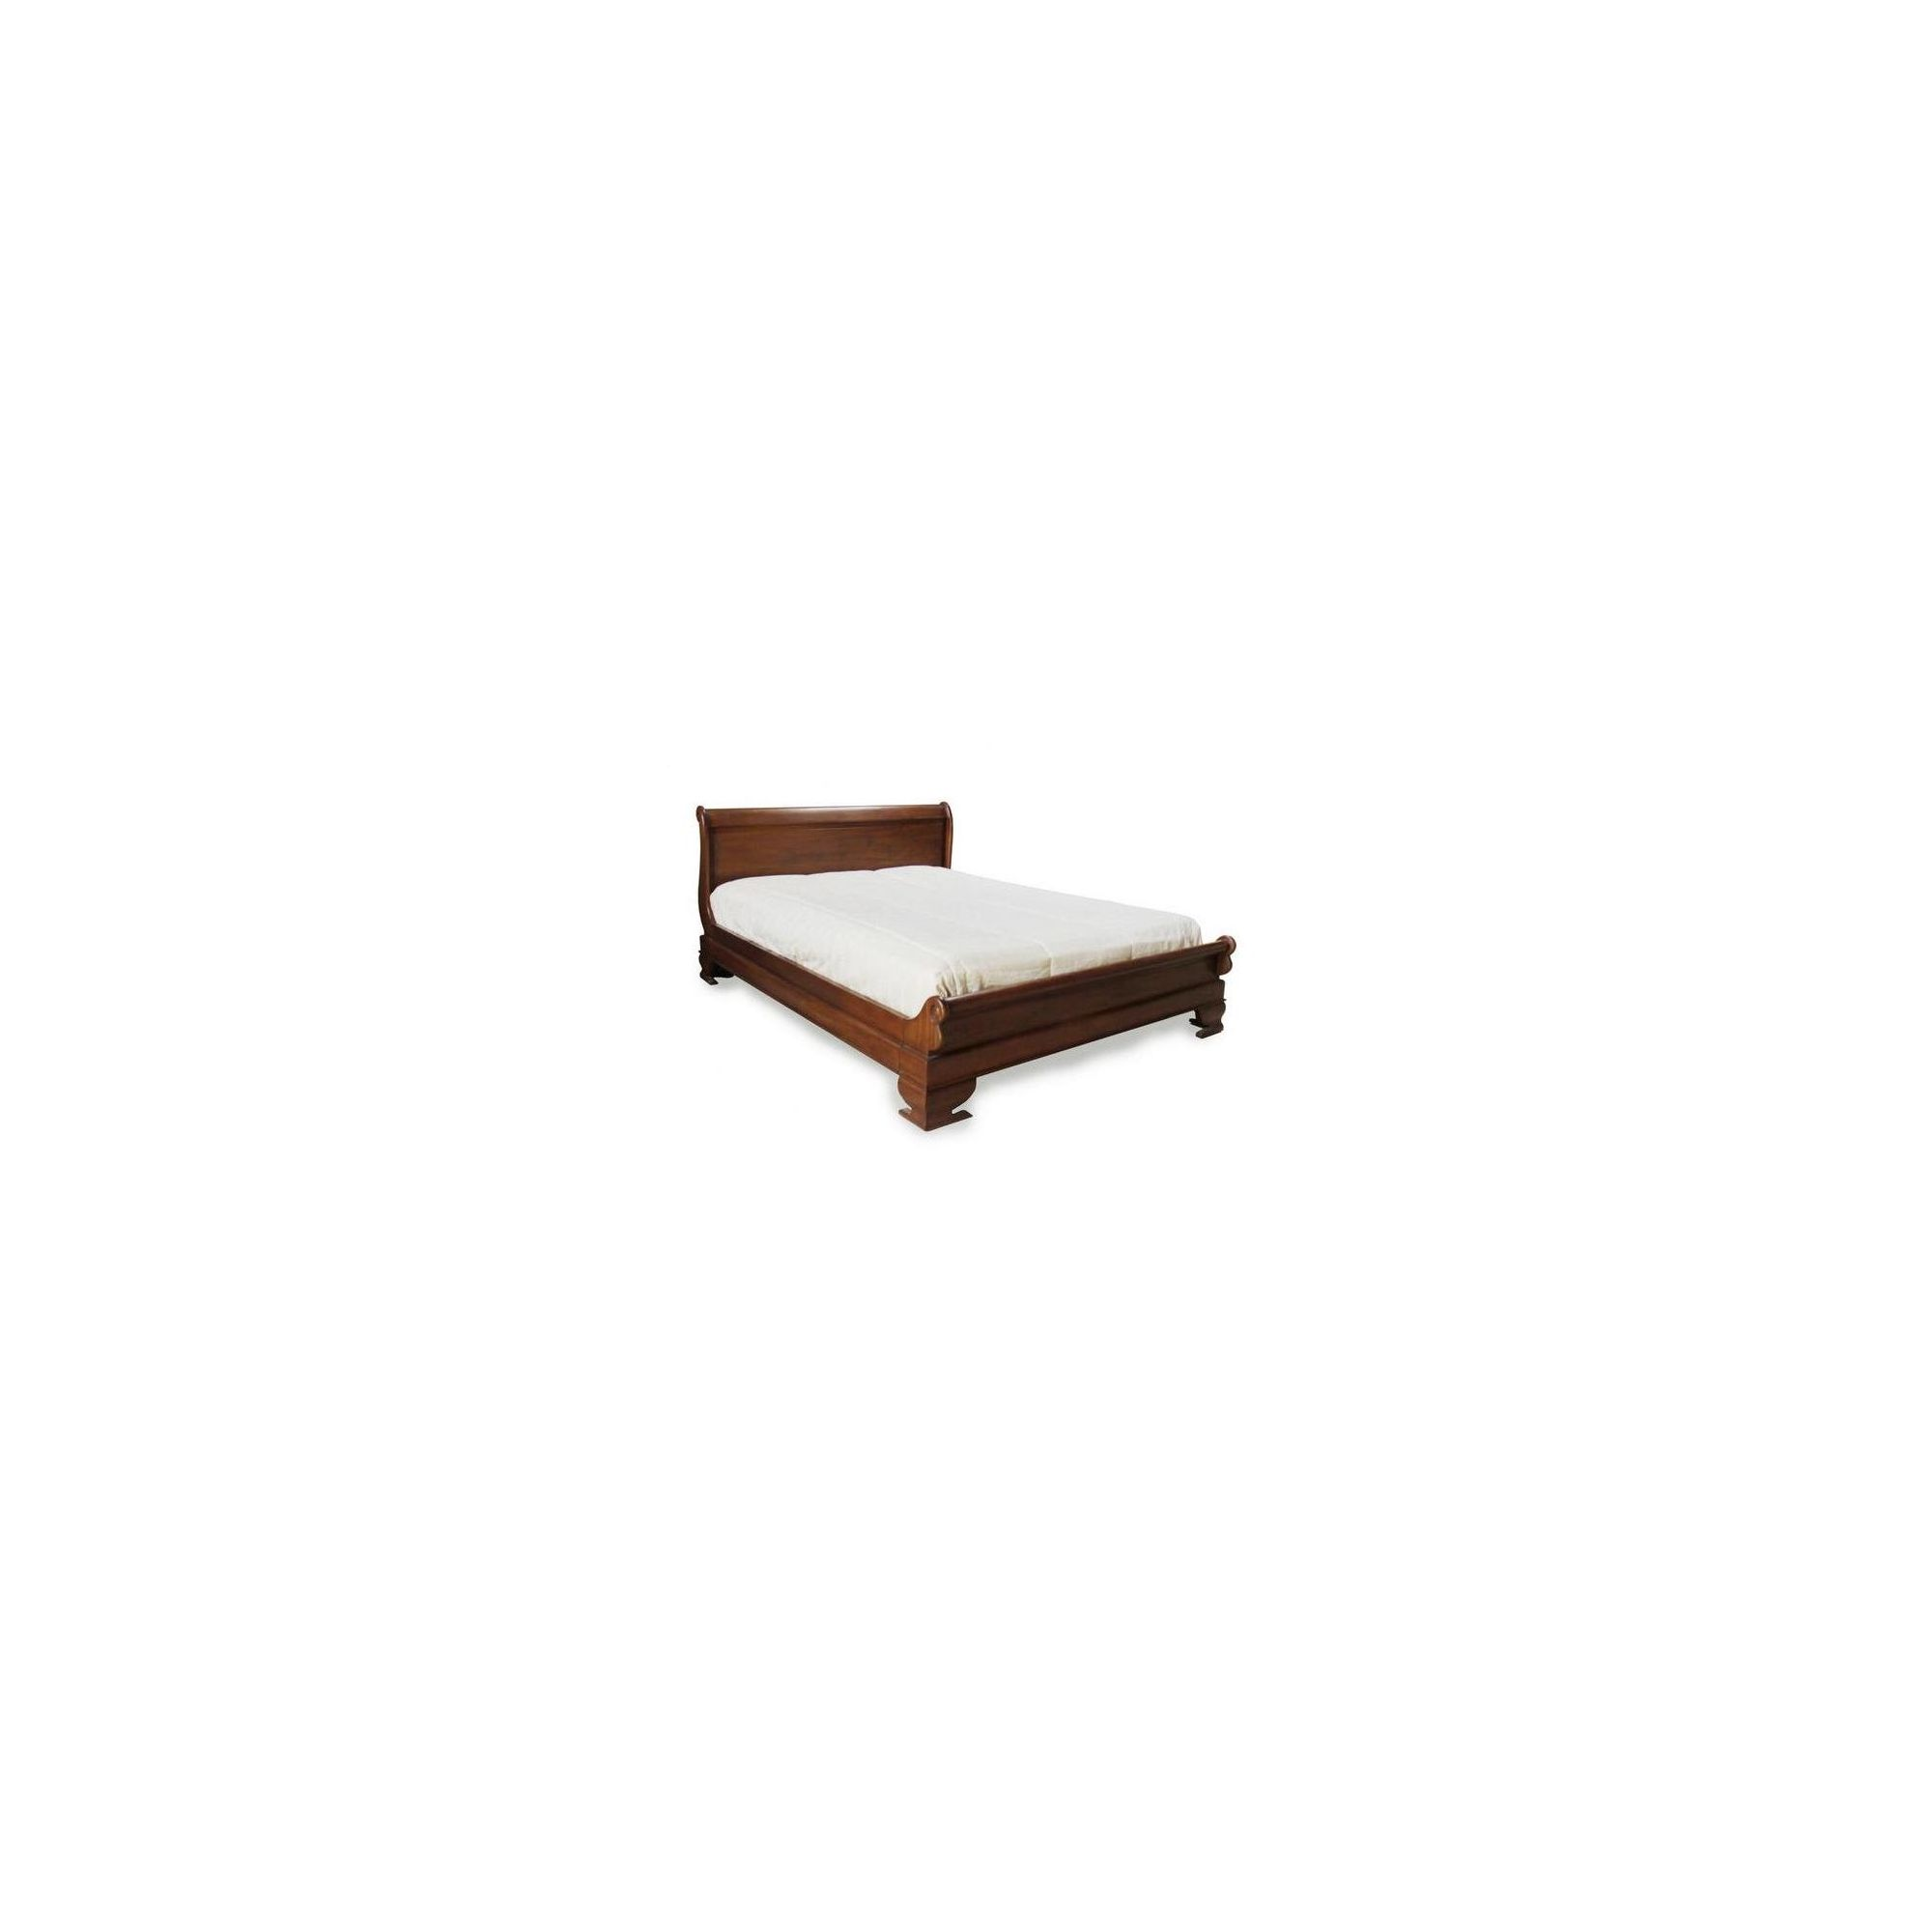 Lock stock and barrel Mahogany Sleigh Bed with Low Footboard in Mahogany - King - Wax at Tesco Direct